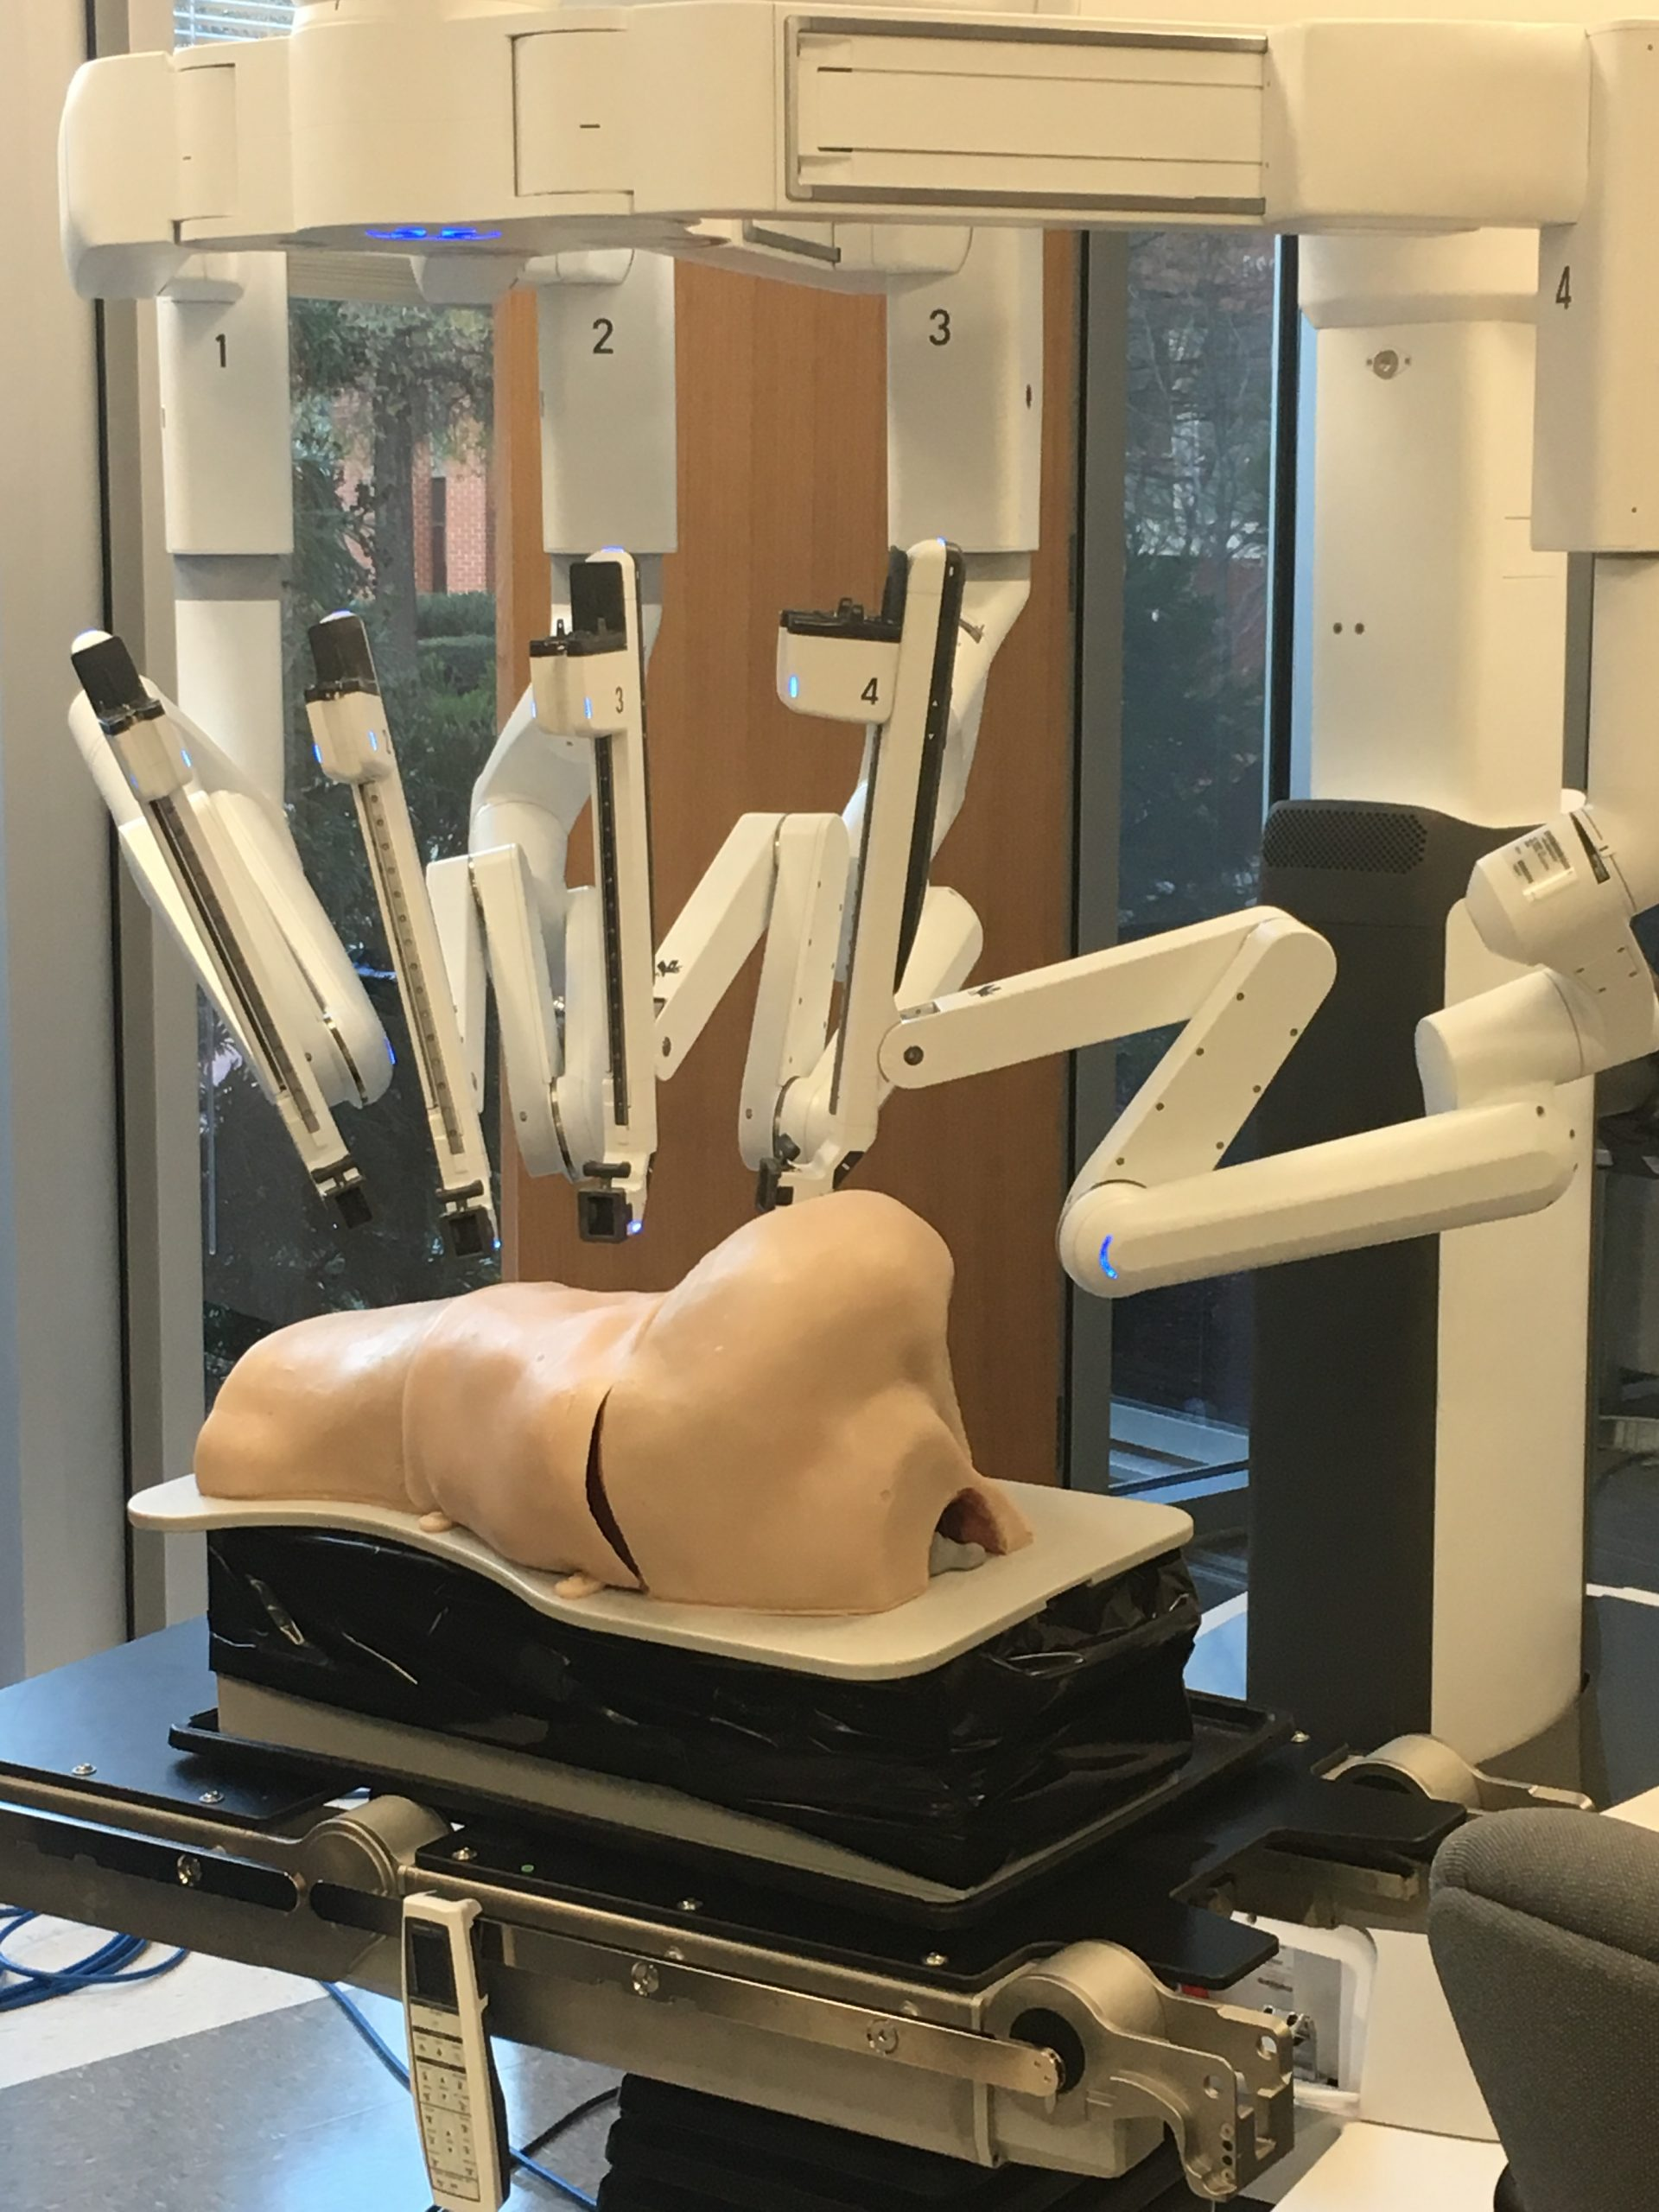 Rubber Mannequin with da Vinci Surgical System